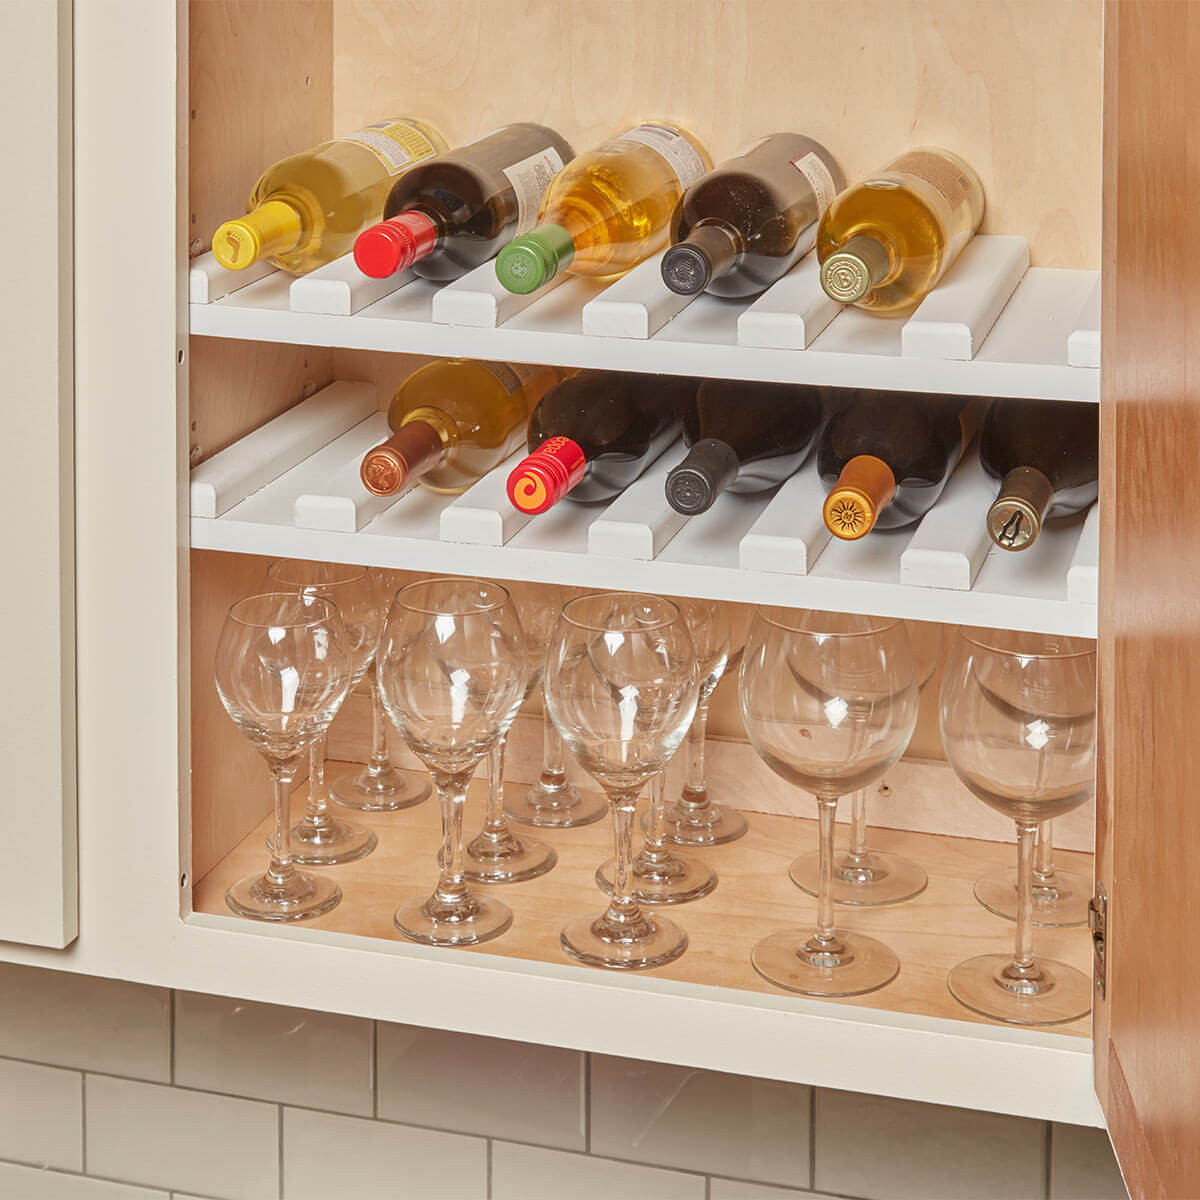 Best ideas about DIY Wine Cabinet . Save or Pin Easy to Make Wine Rack — The Family Handyman Now.